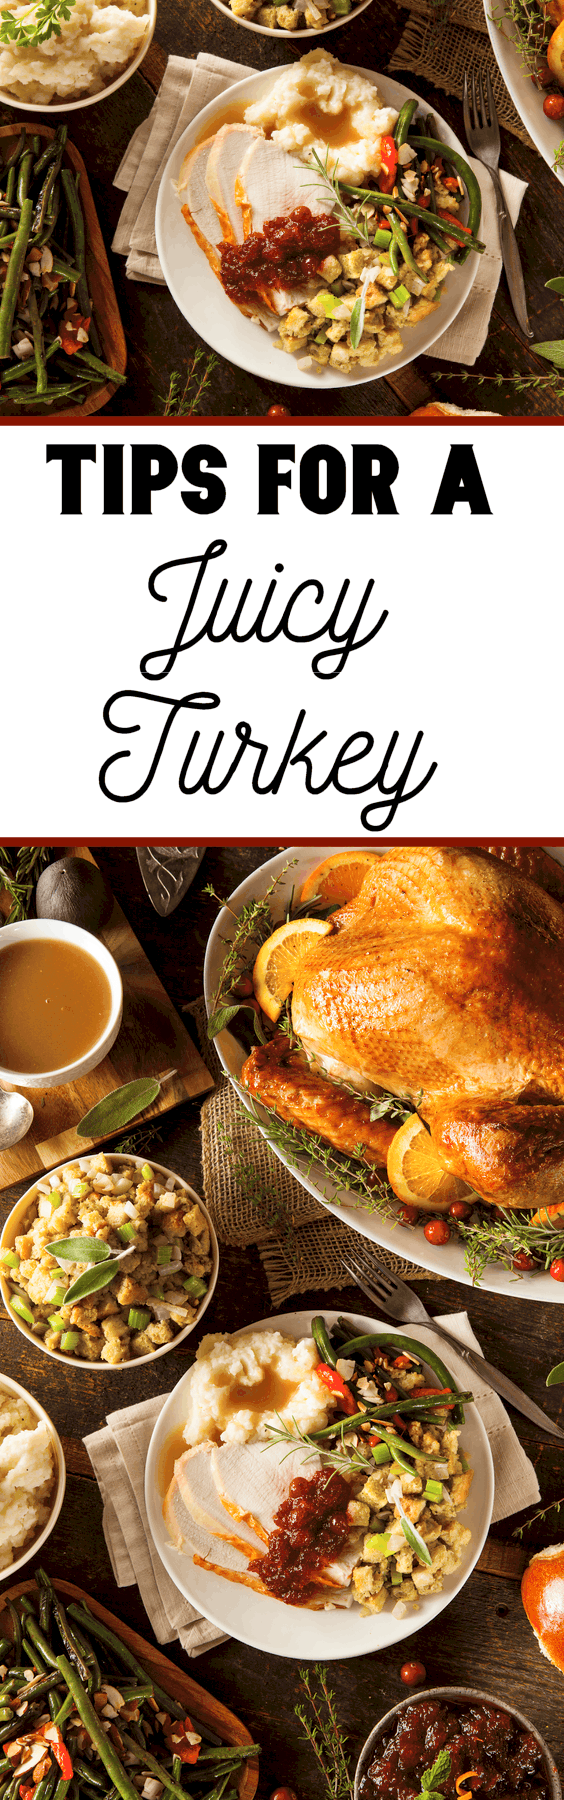 The worst thing on Thanksgiving is a turkey that is too dry to eat. By following these tips of a juicy turkey you won't have to worry about a dry turkey.